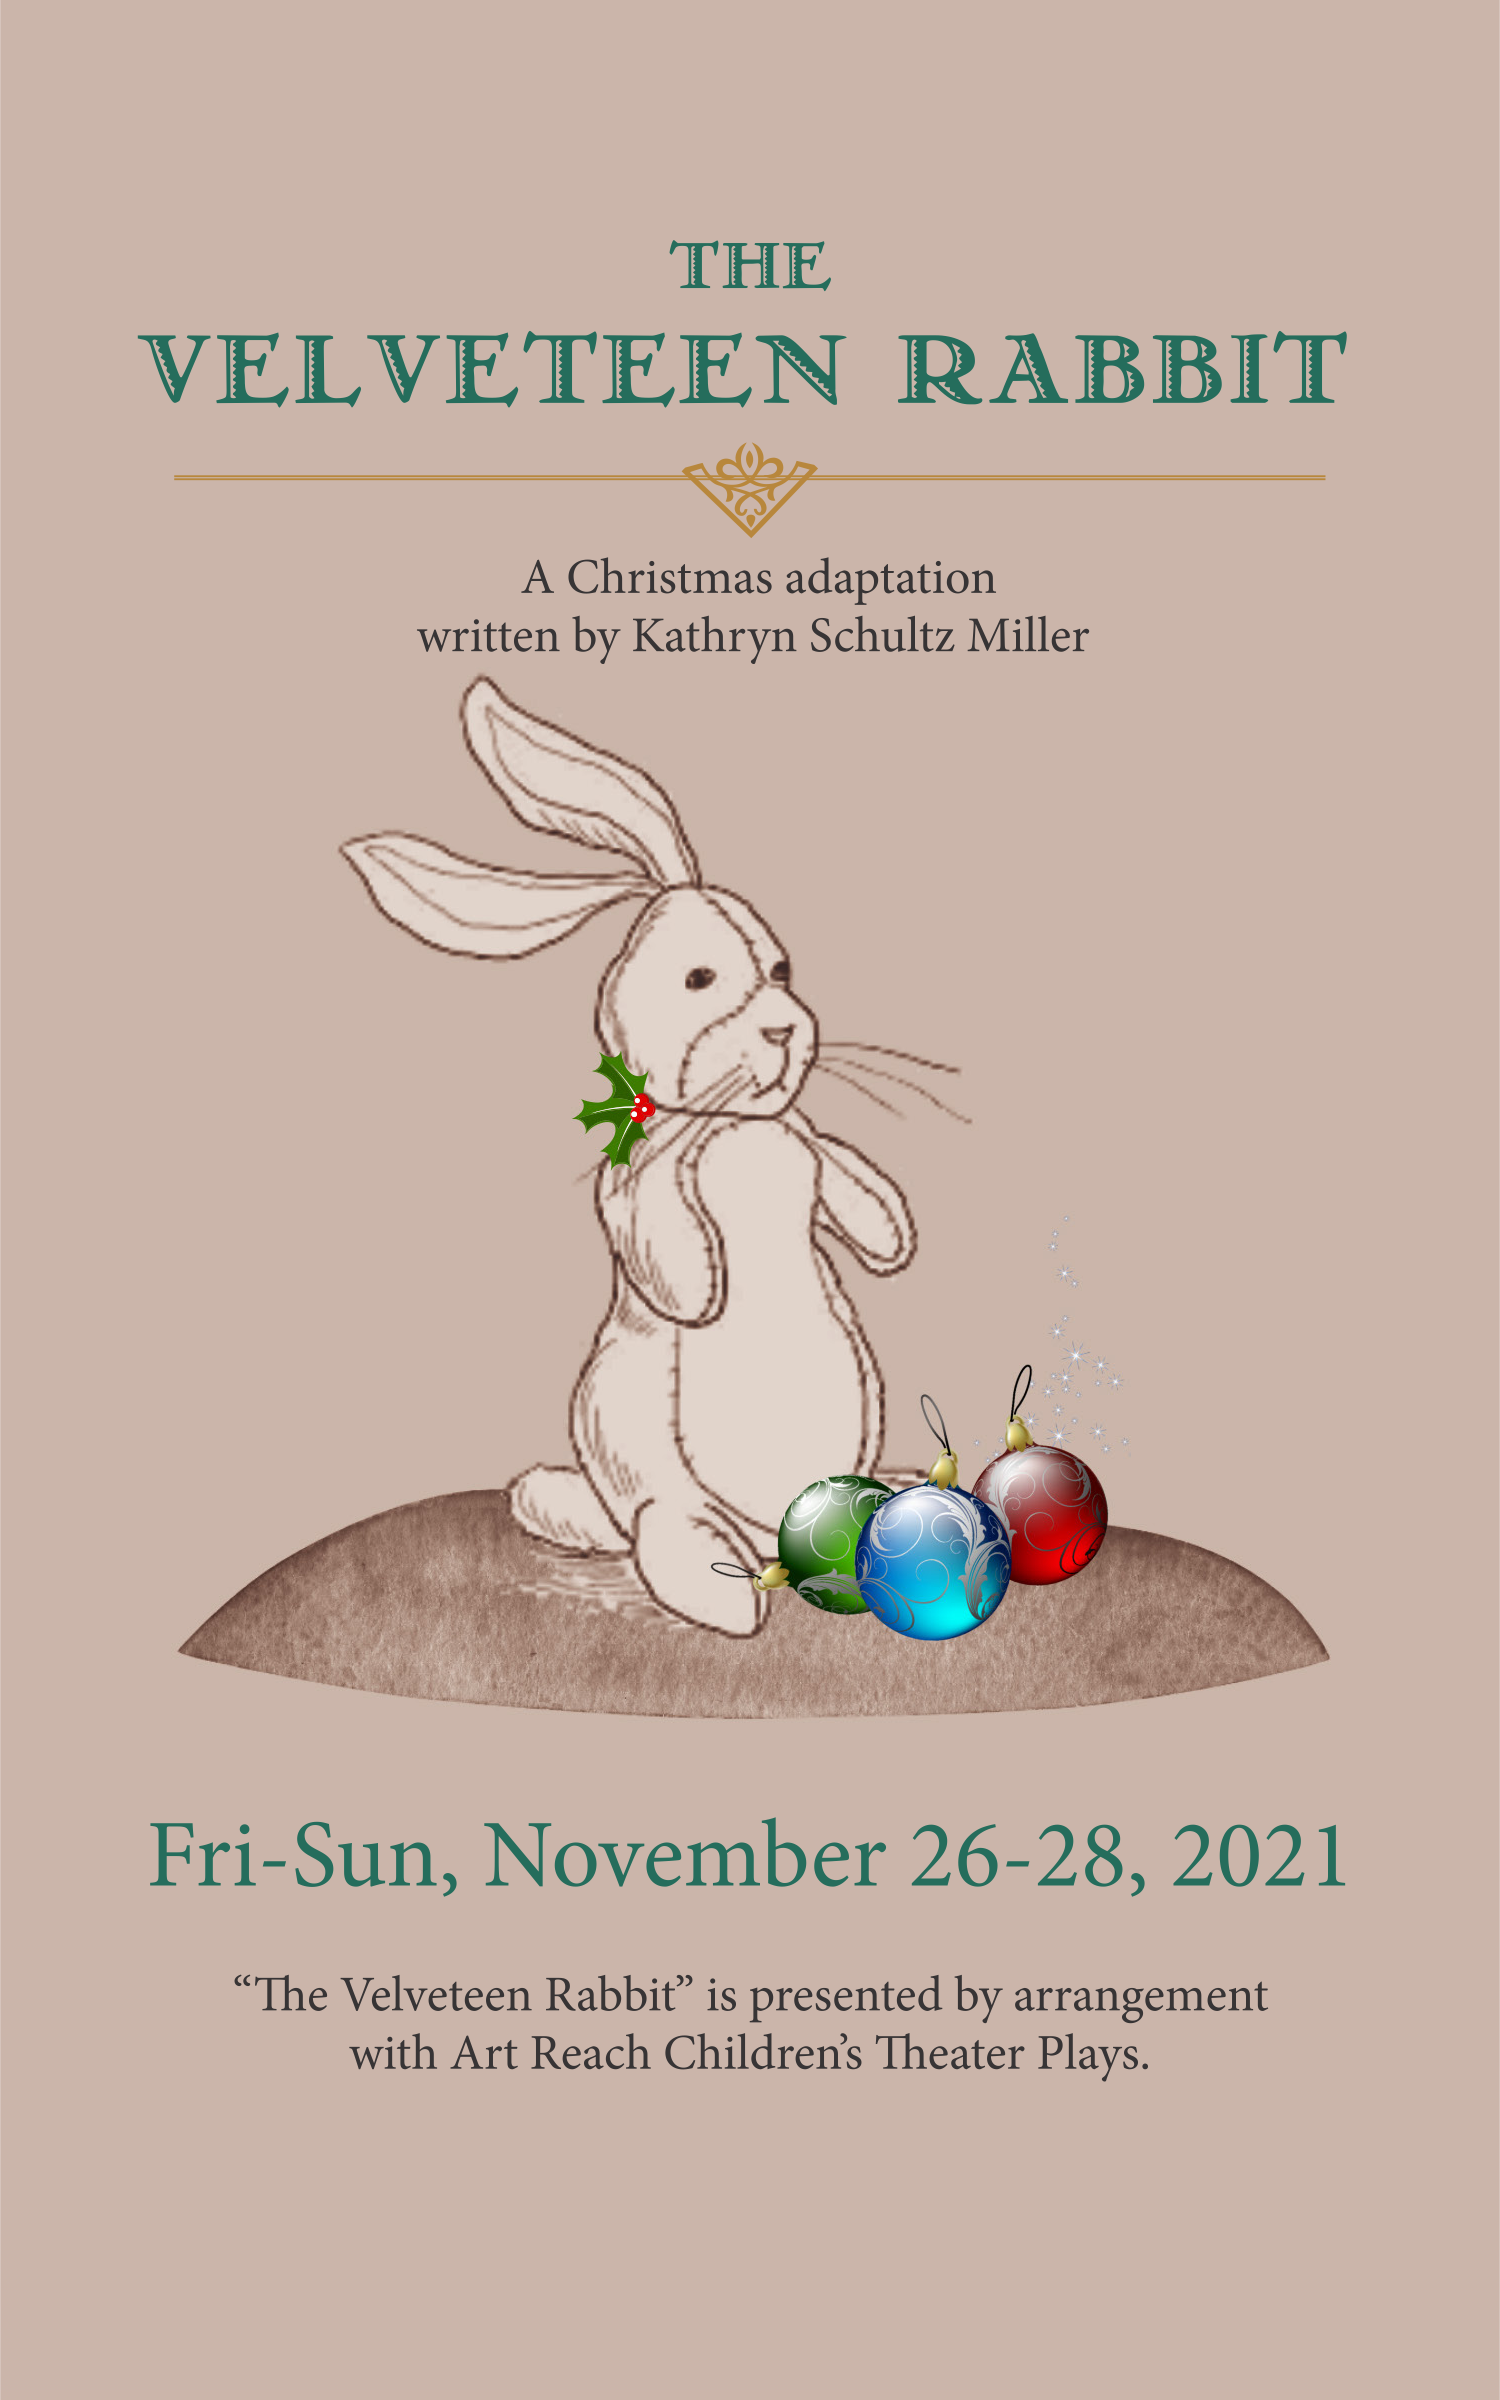 The Velveteen Rabbit: A Christmas Musical, November 26-28 at State Street Theater Co., 1 N. State Street, New Ulm